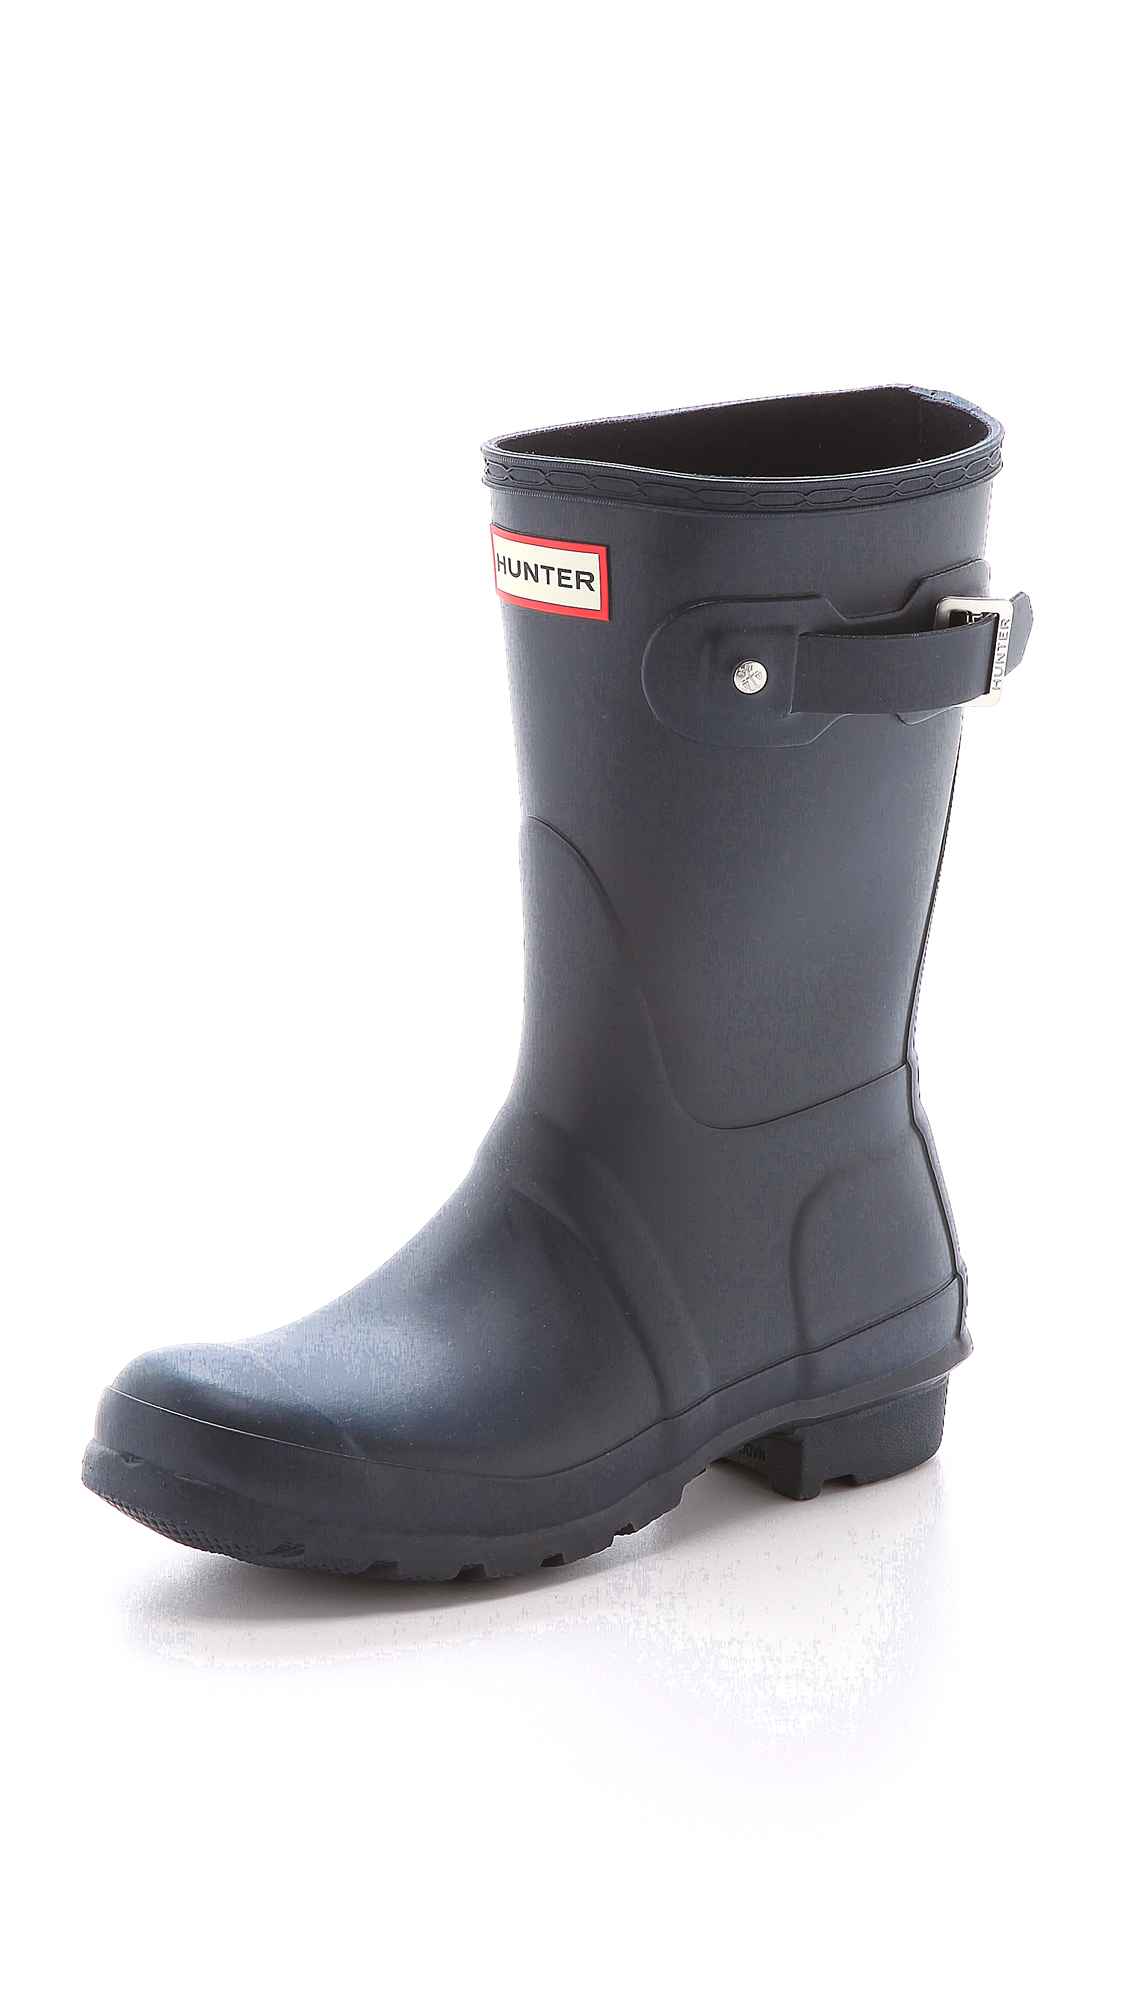 Hunter Boots Original Short Boots - Navy at Shopbop